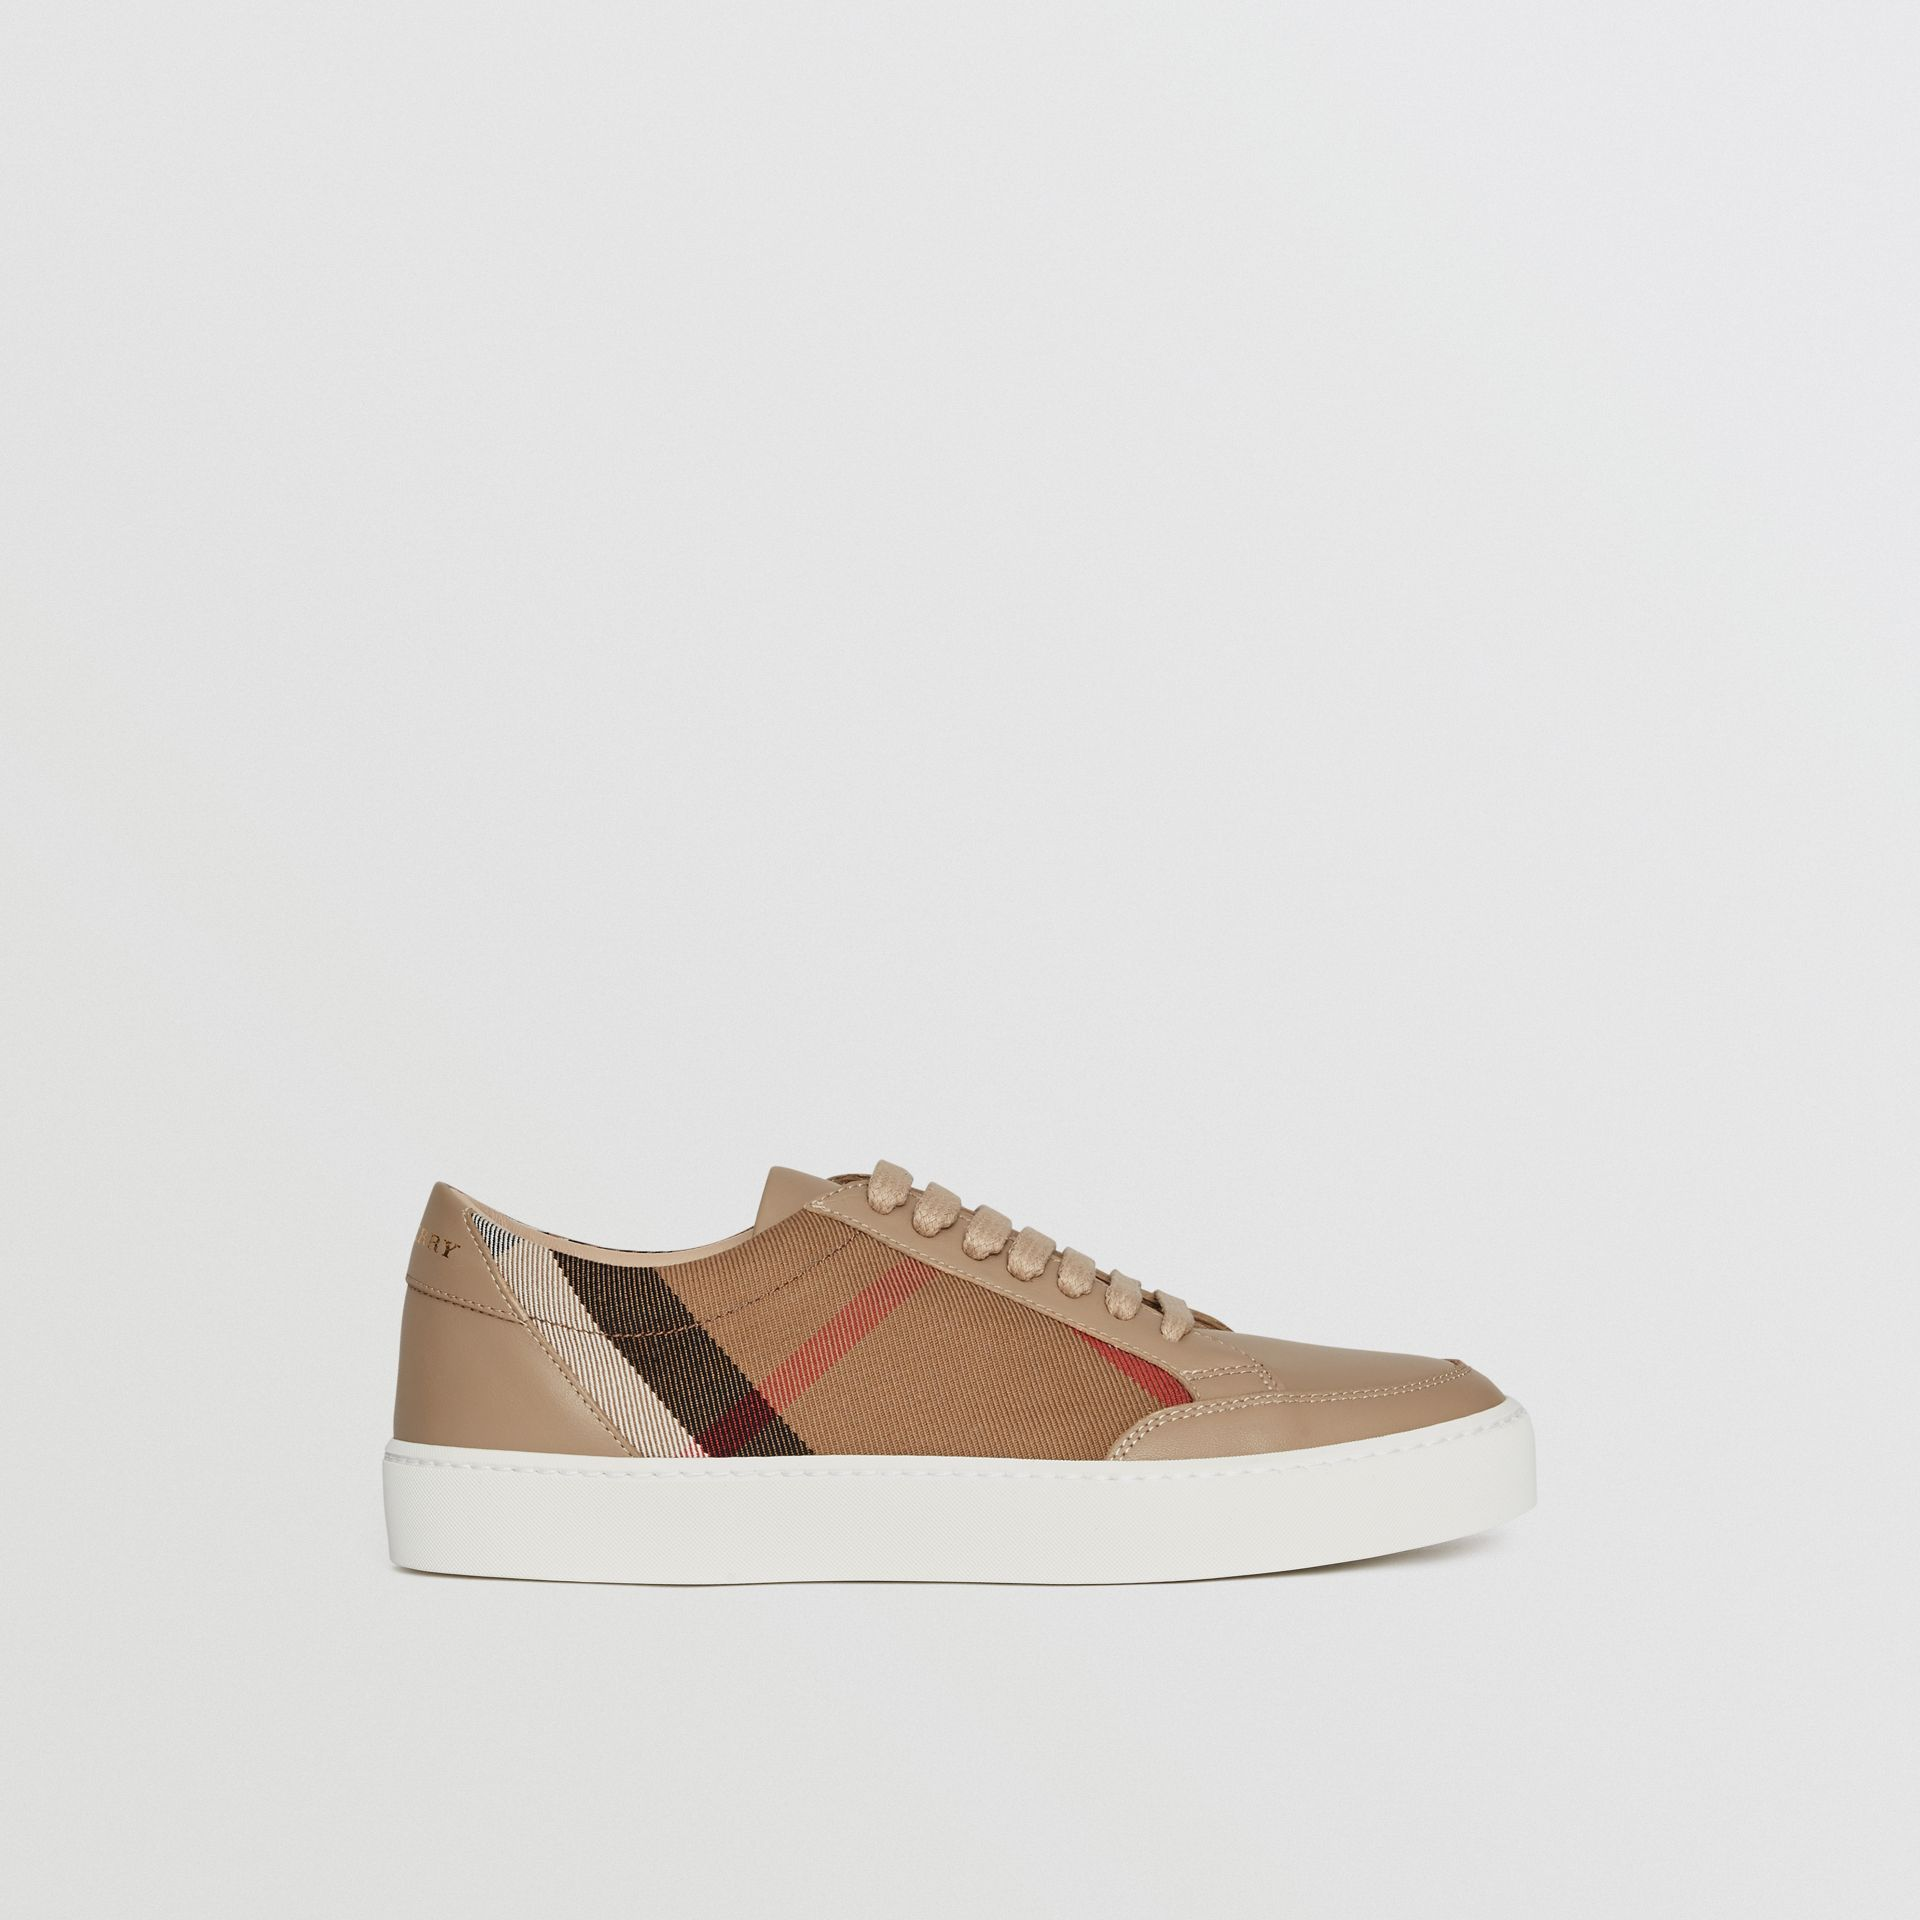 Check Detail Leather Sneakers in House Check/ Nude - Women | Burberry United Kingdom - gallery image 5